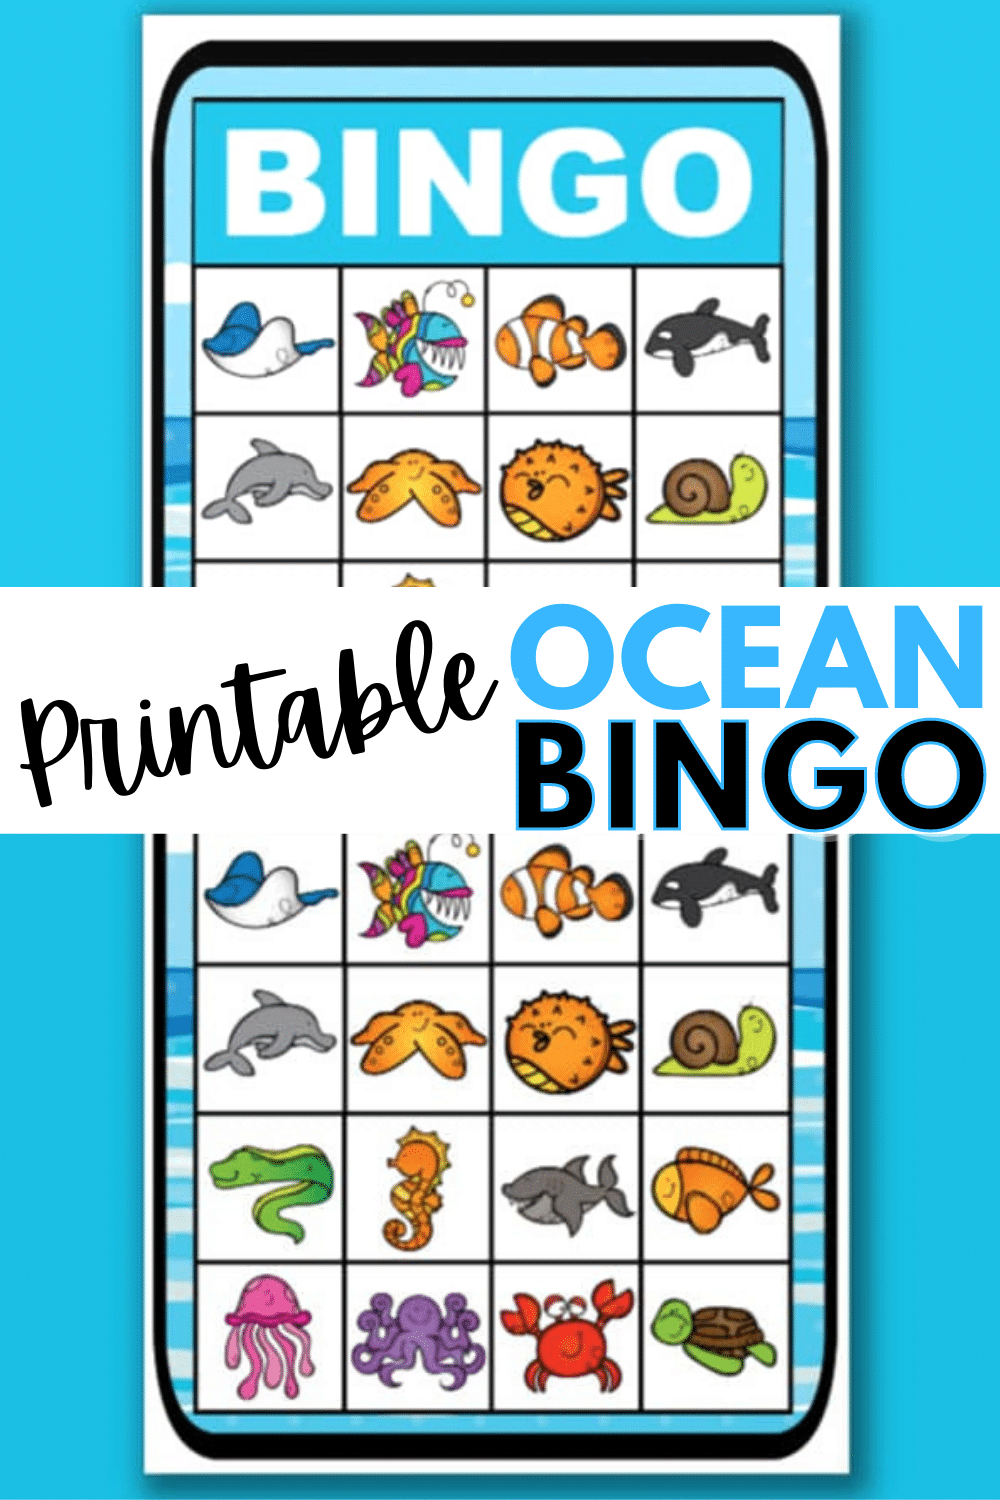 This printable ocean bingo game is great for tropical themed parties. Six unique bingo cards make this a great kids activity. #bingo #printables #ocean via @wondermomwannab